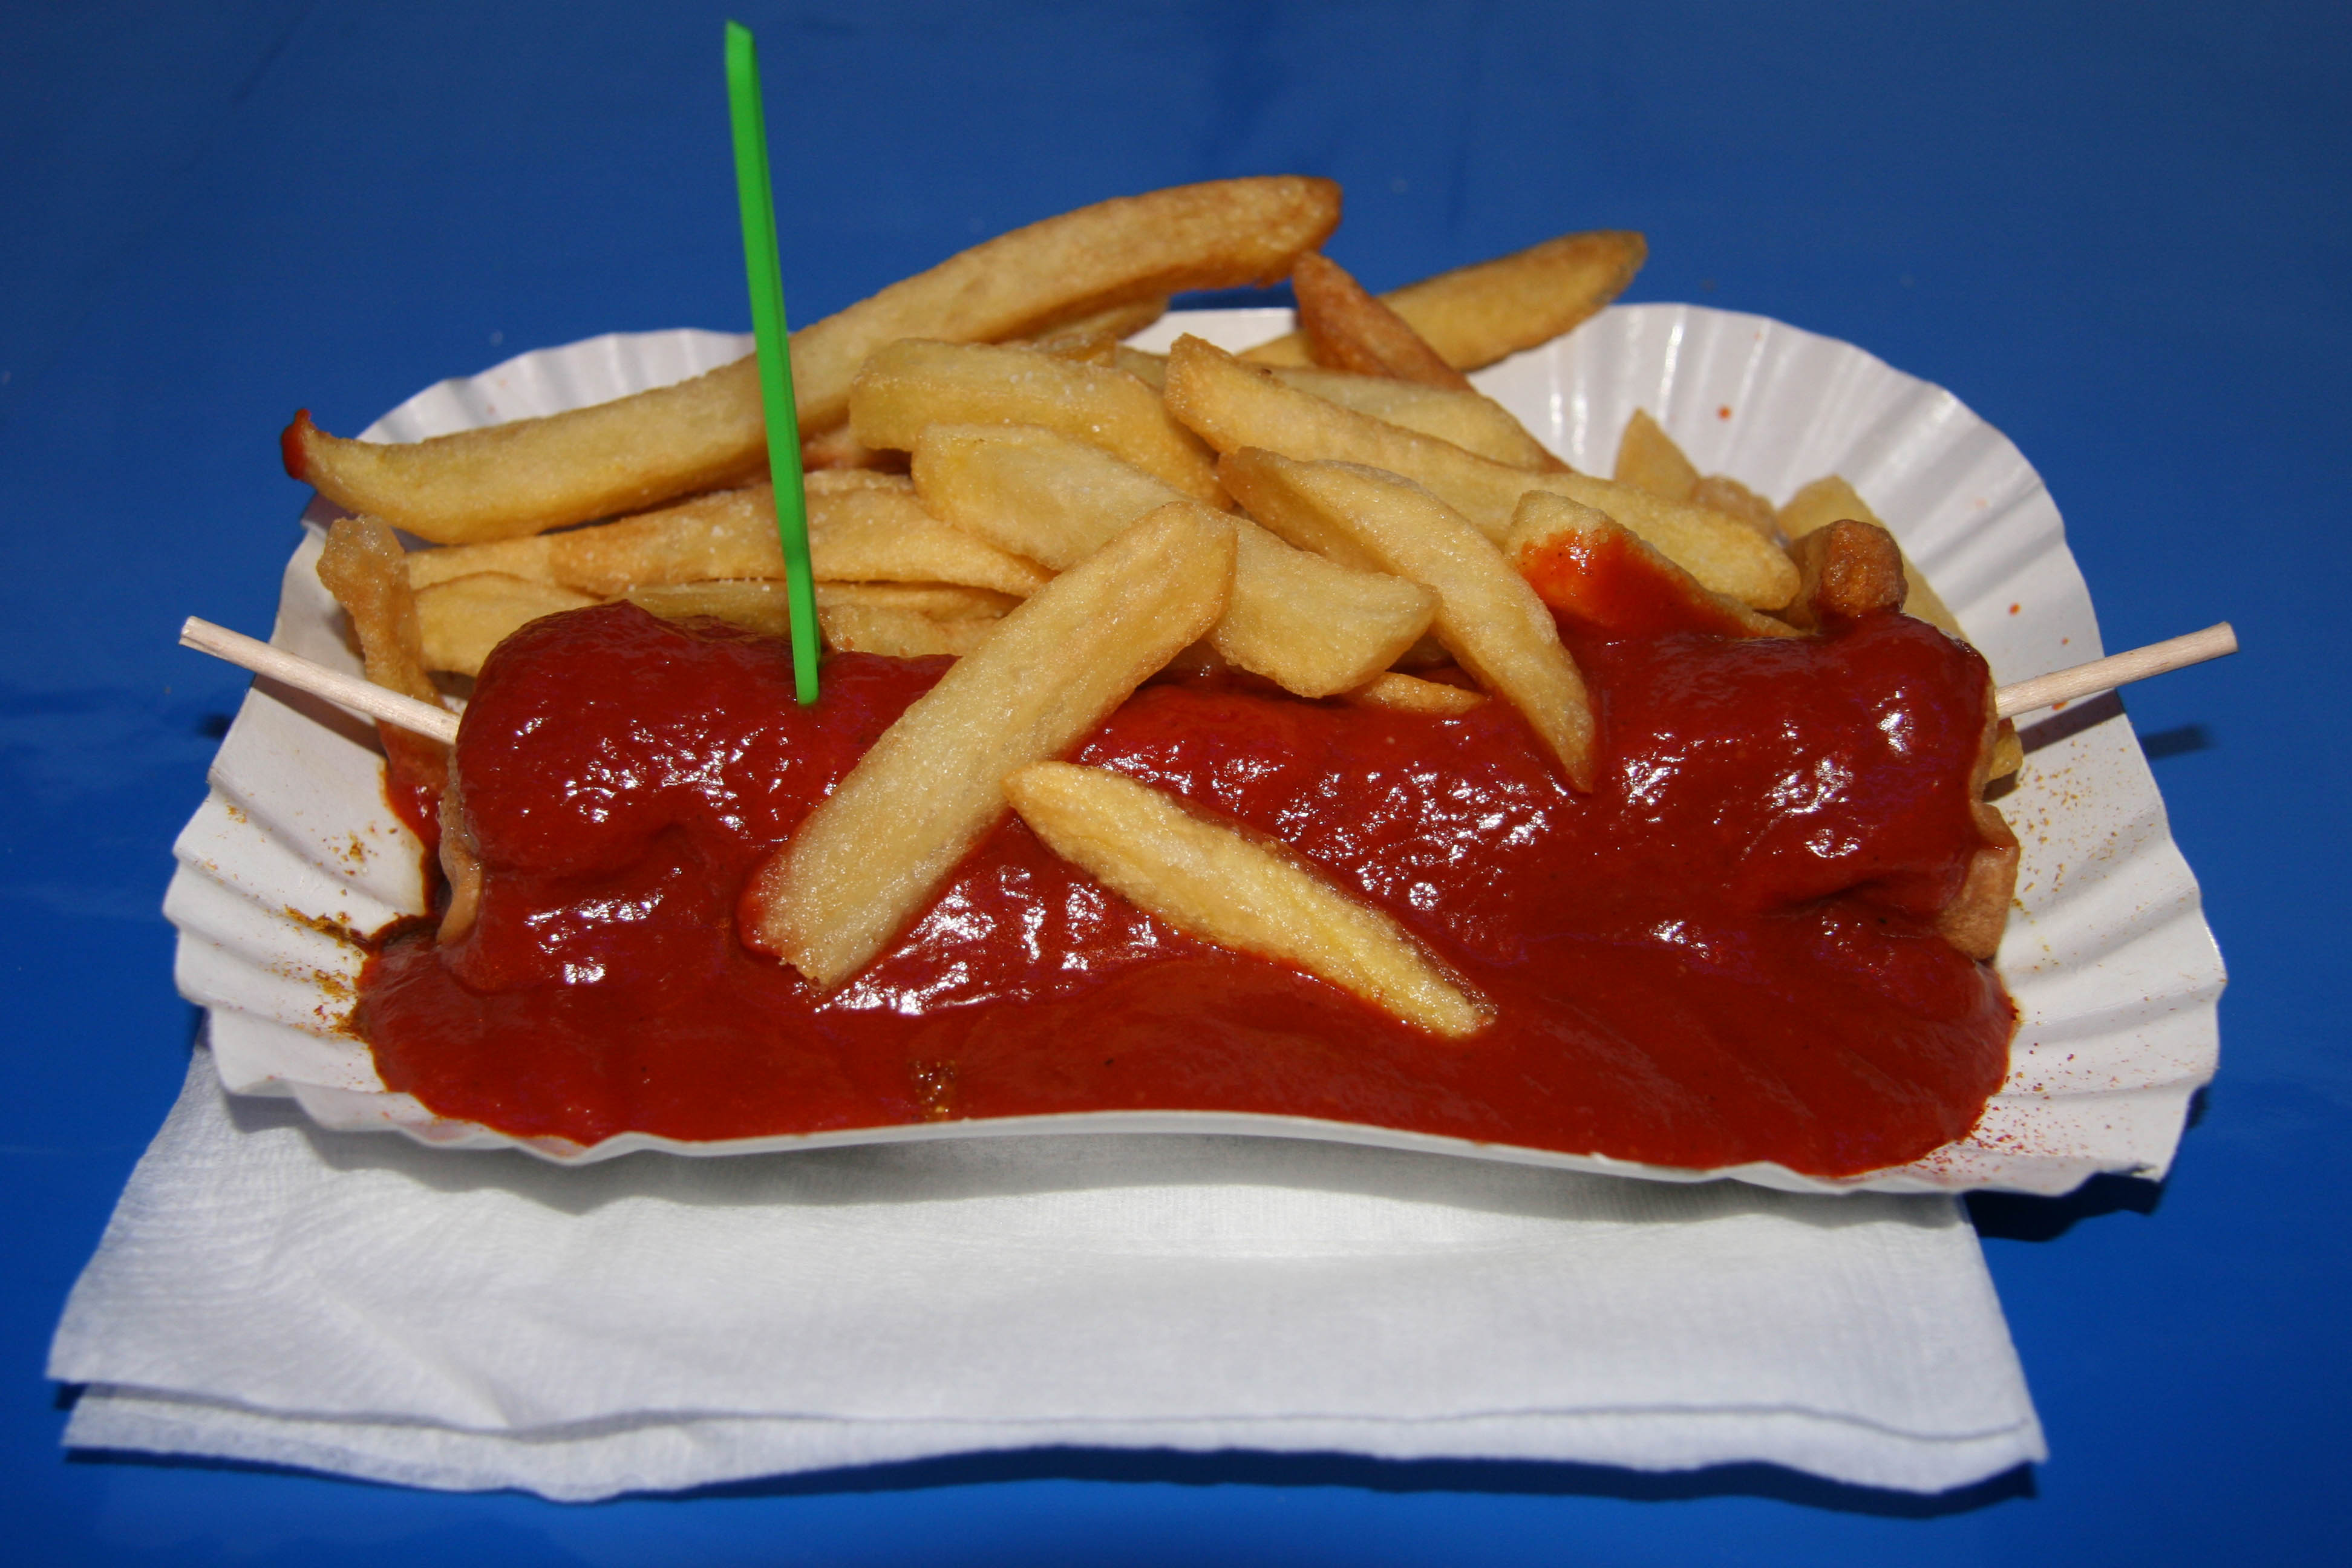 Currywurst & Chips (Currywurst mit Pommes) at Krasselt's Imbiss in Steglitz in Berlin